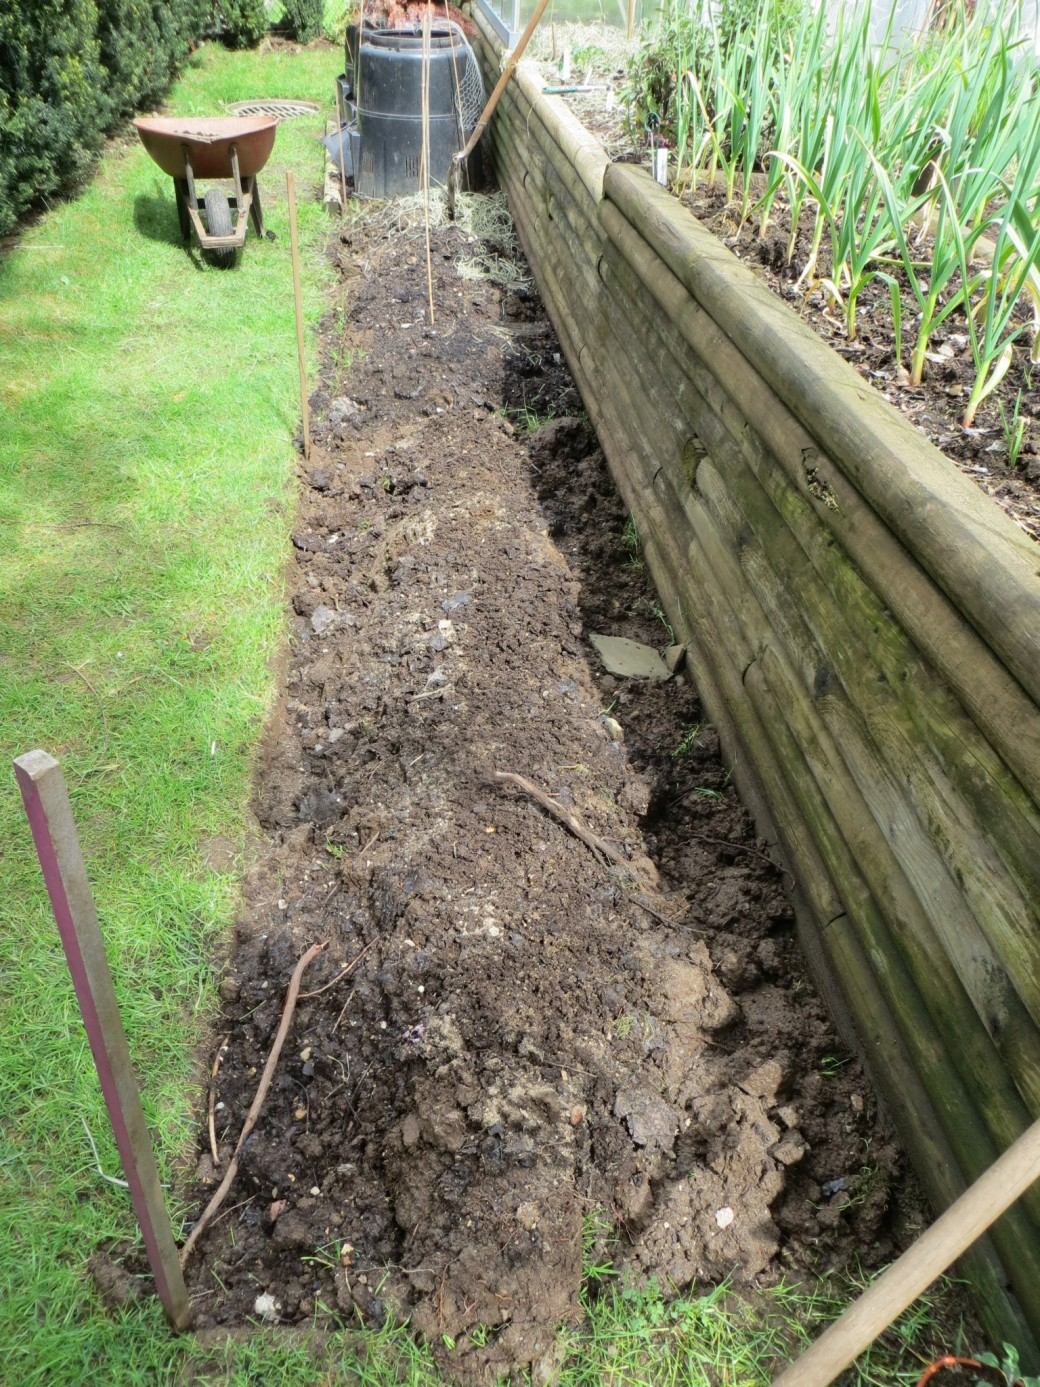 As we have run out of gardening space, a new garden had to be turned before planting raspberries